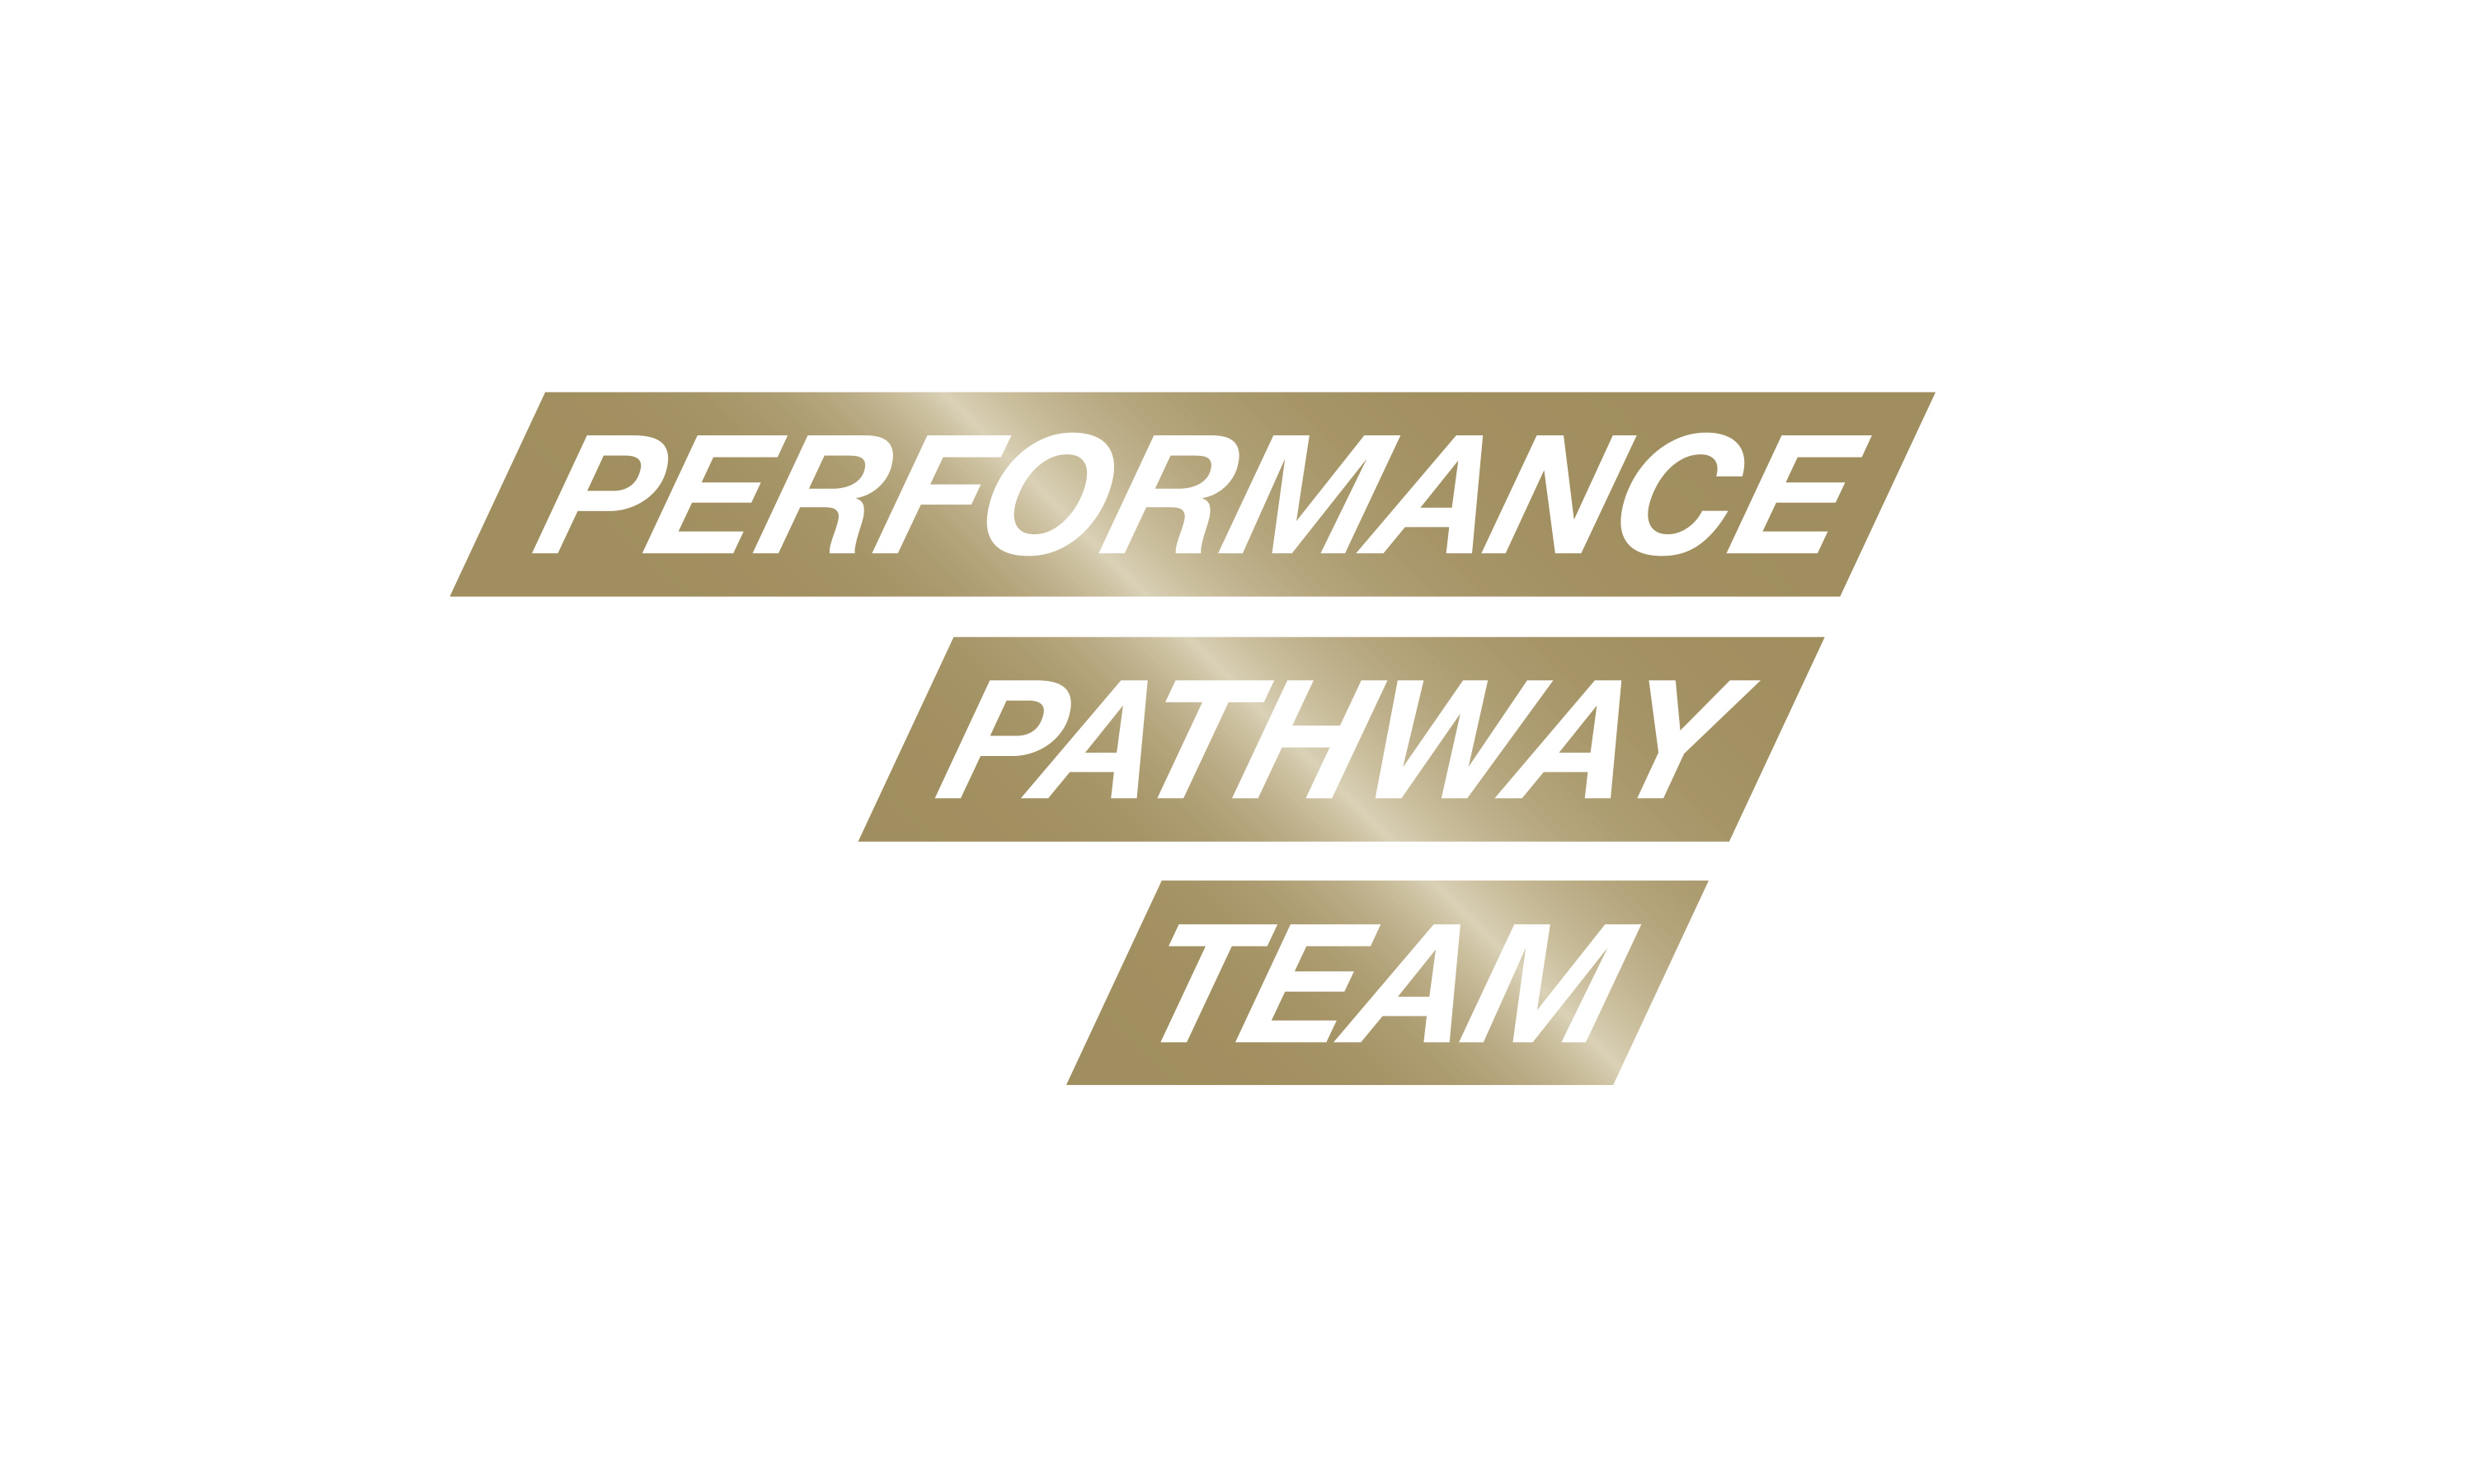 Branding by Neon - Sports branding - UK Sport Performance Pathway Team logo designed by Dana Robertson